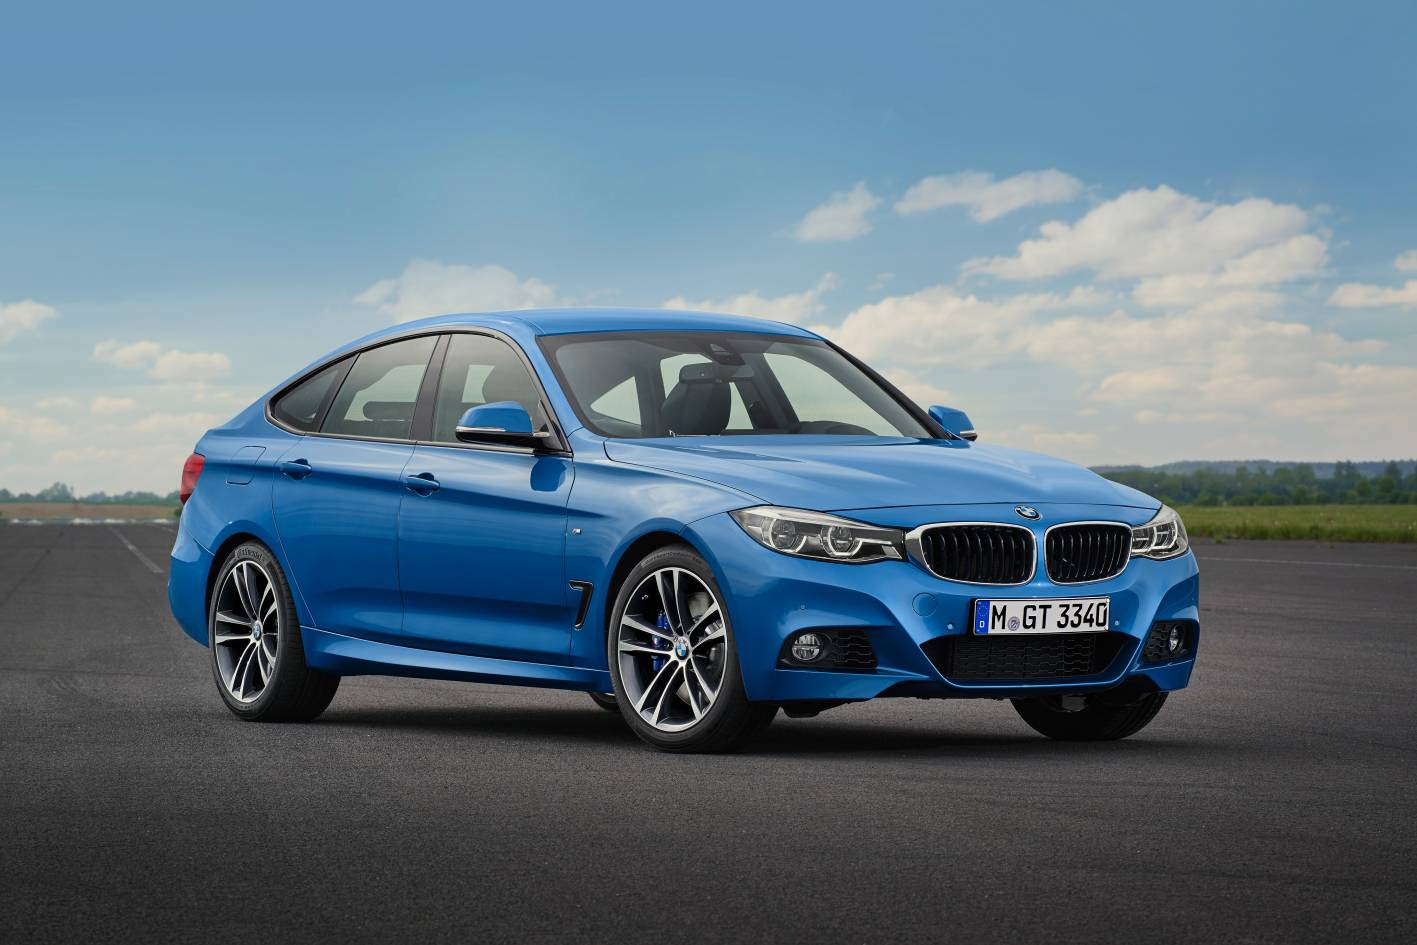 2016 BMW 3 Series Gran Turismo Pricing and Specification